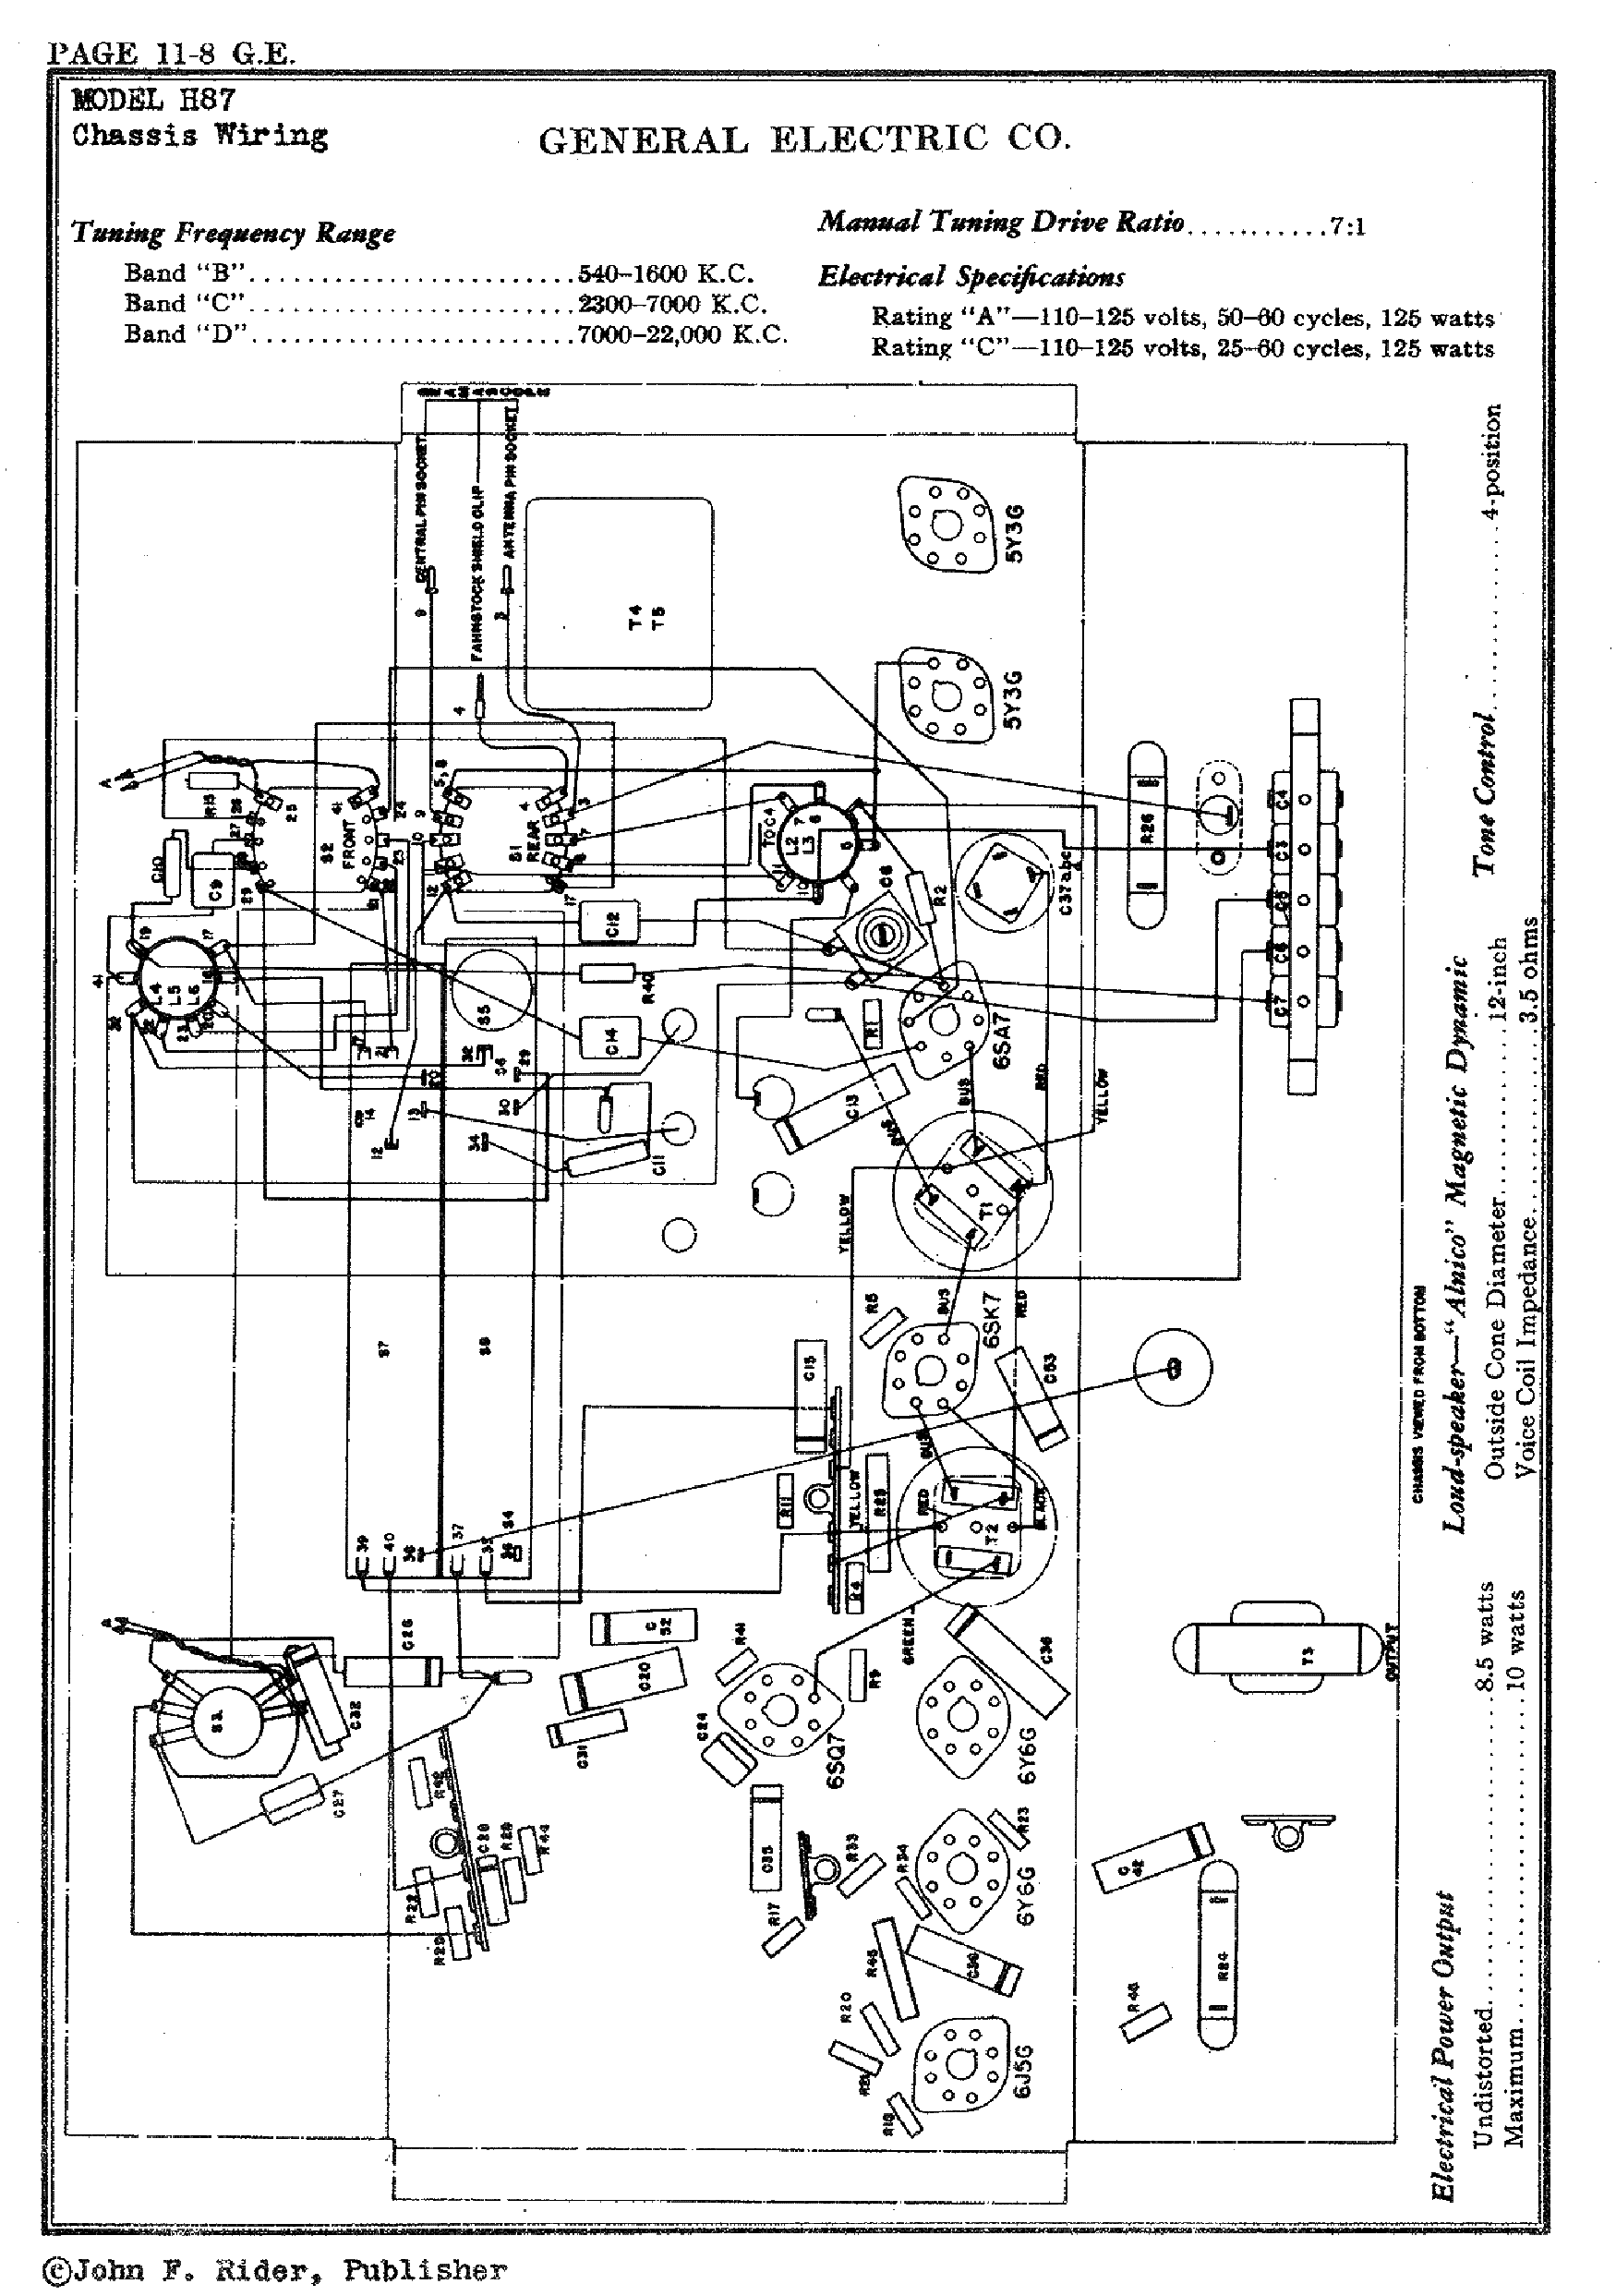 GENERAL ELECTRIC H87 RADIO SCH Service Manual download